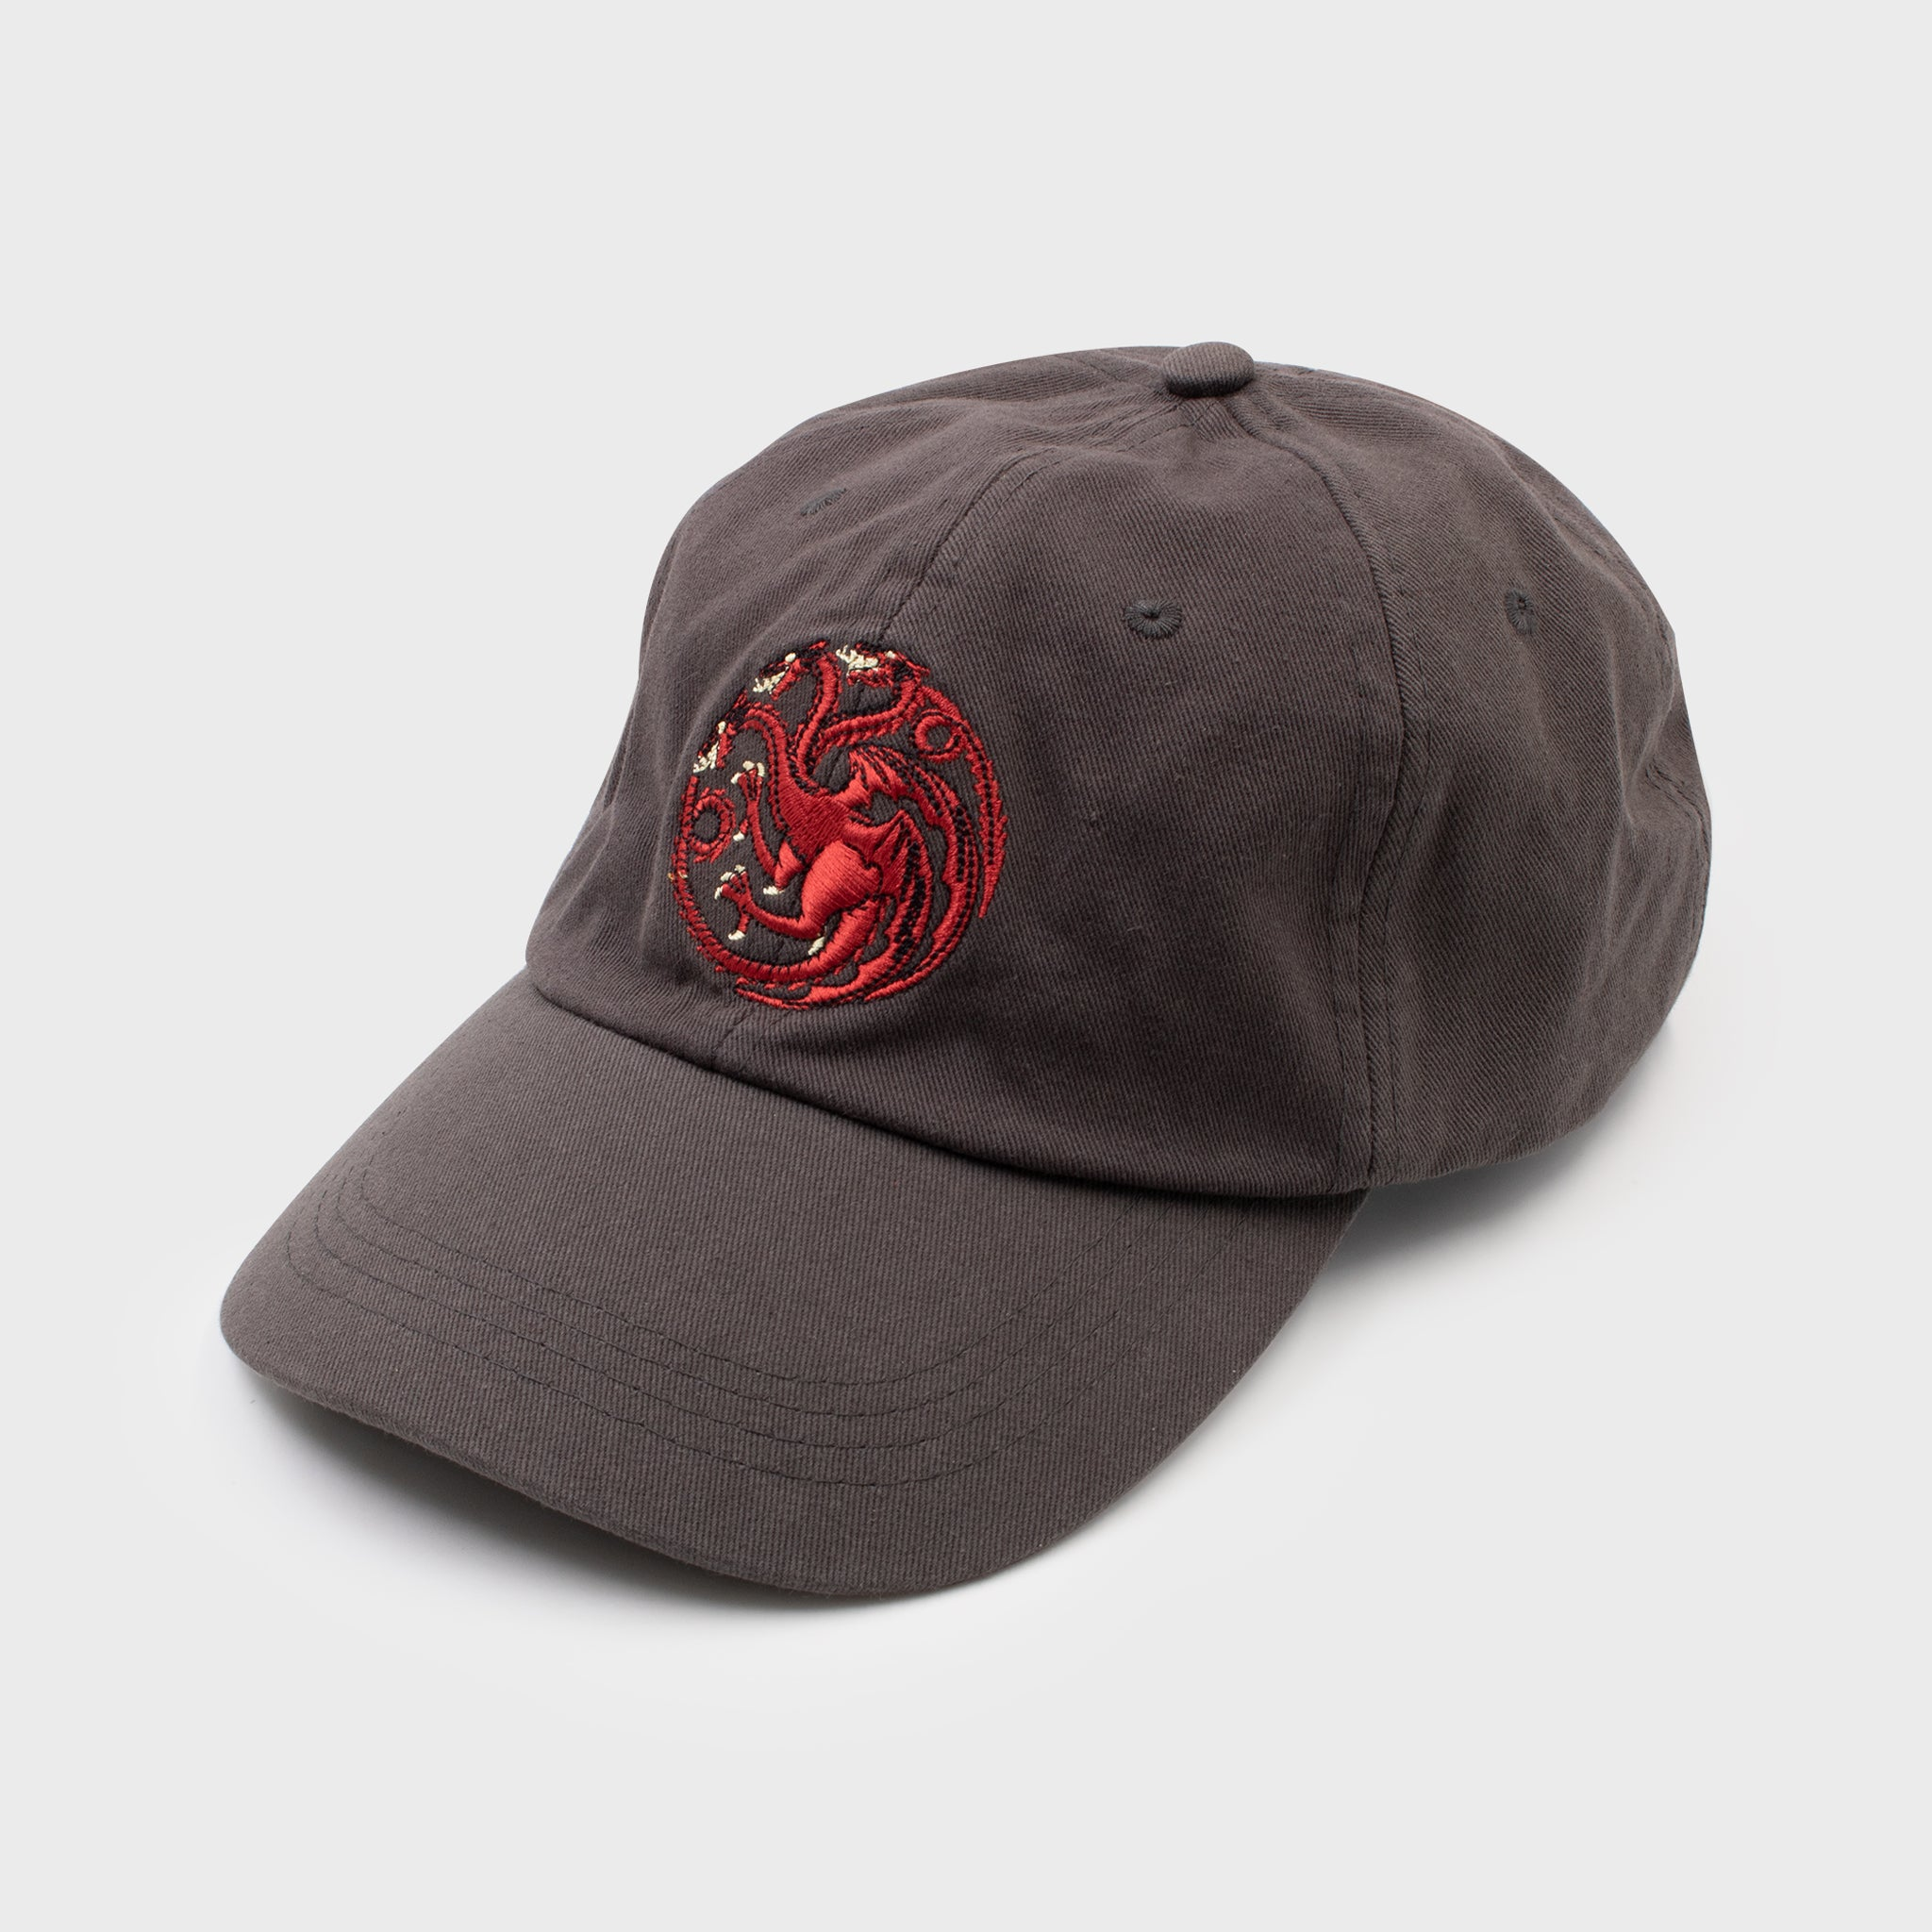 game of thrones got house targaryen hat baseball cap dad cap headwear accessory apparel culturefly